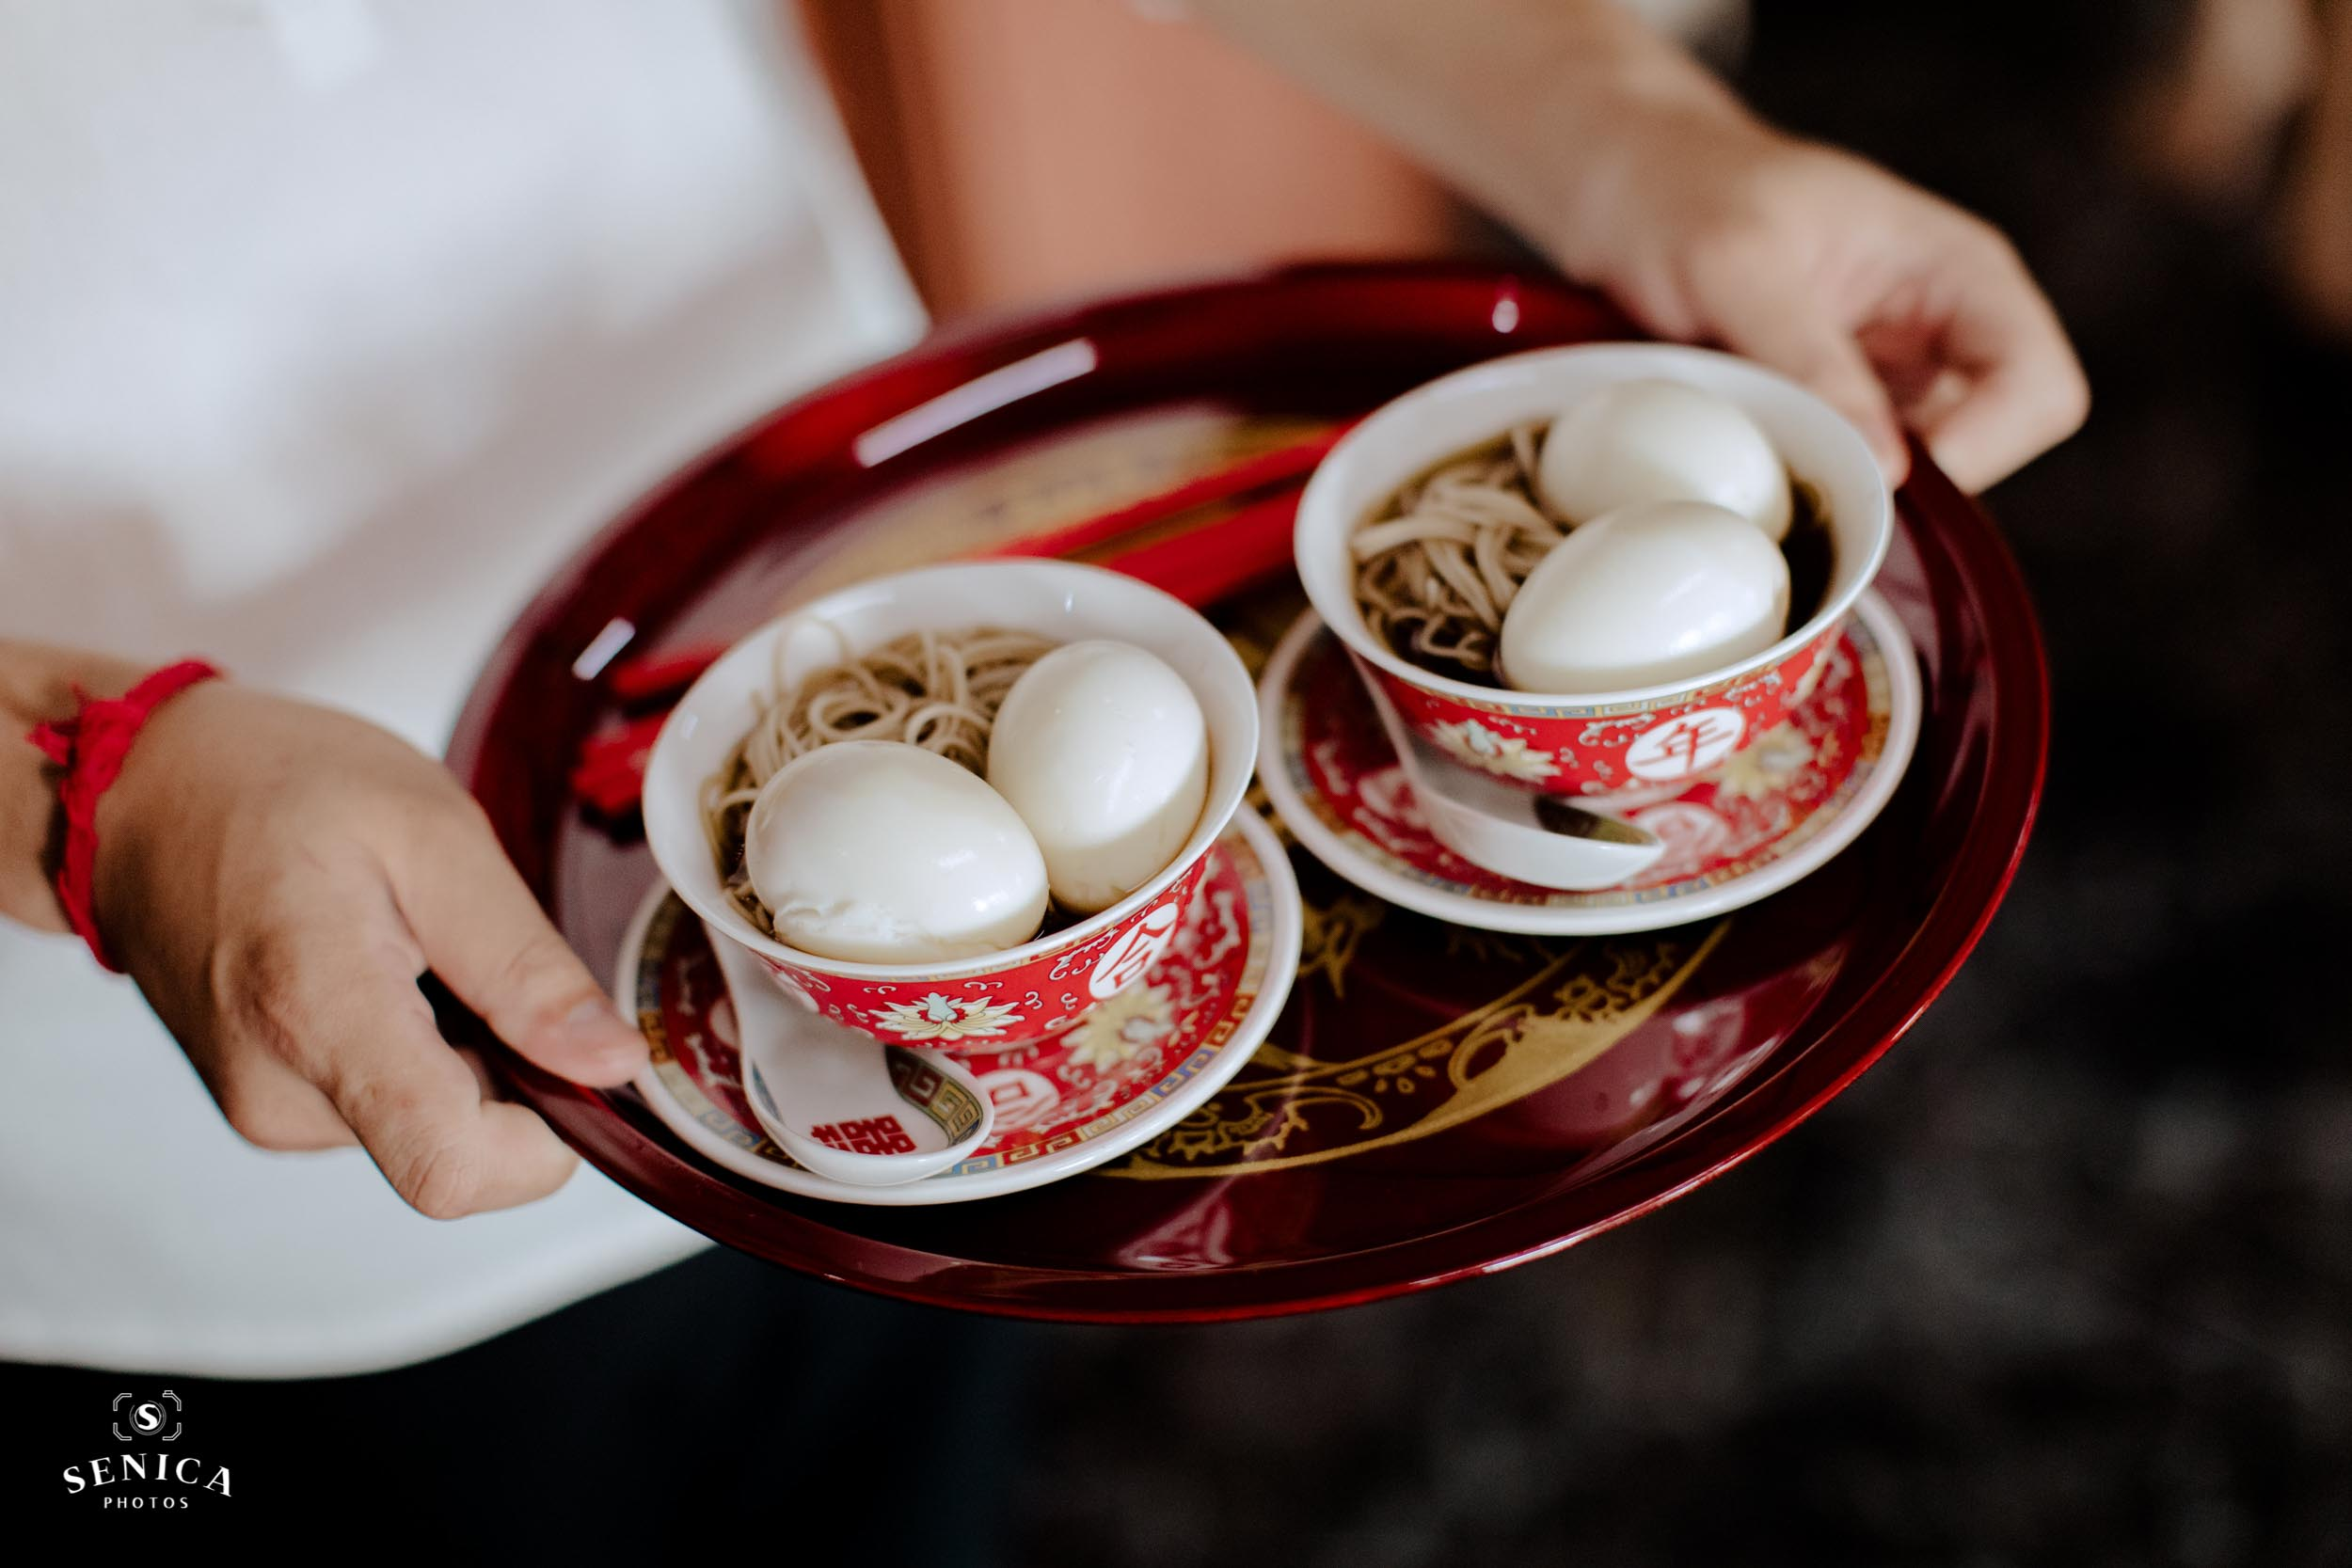 two bowls of mee sua and hard boiled eggs served on a large red plate